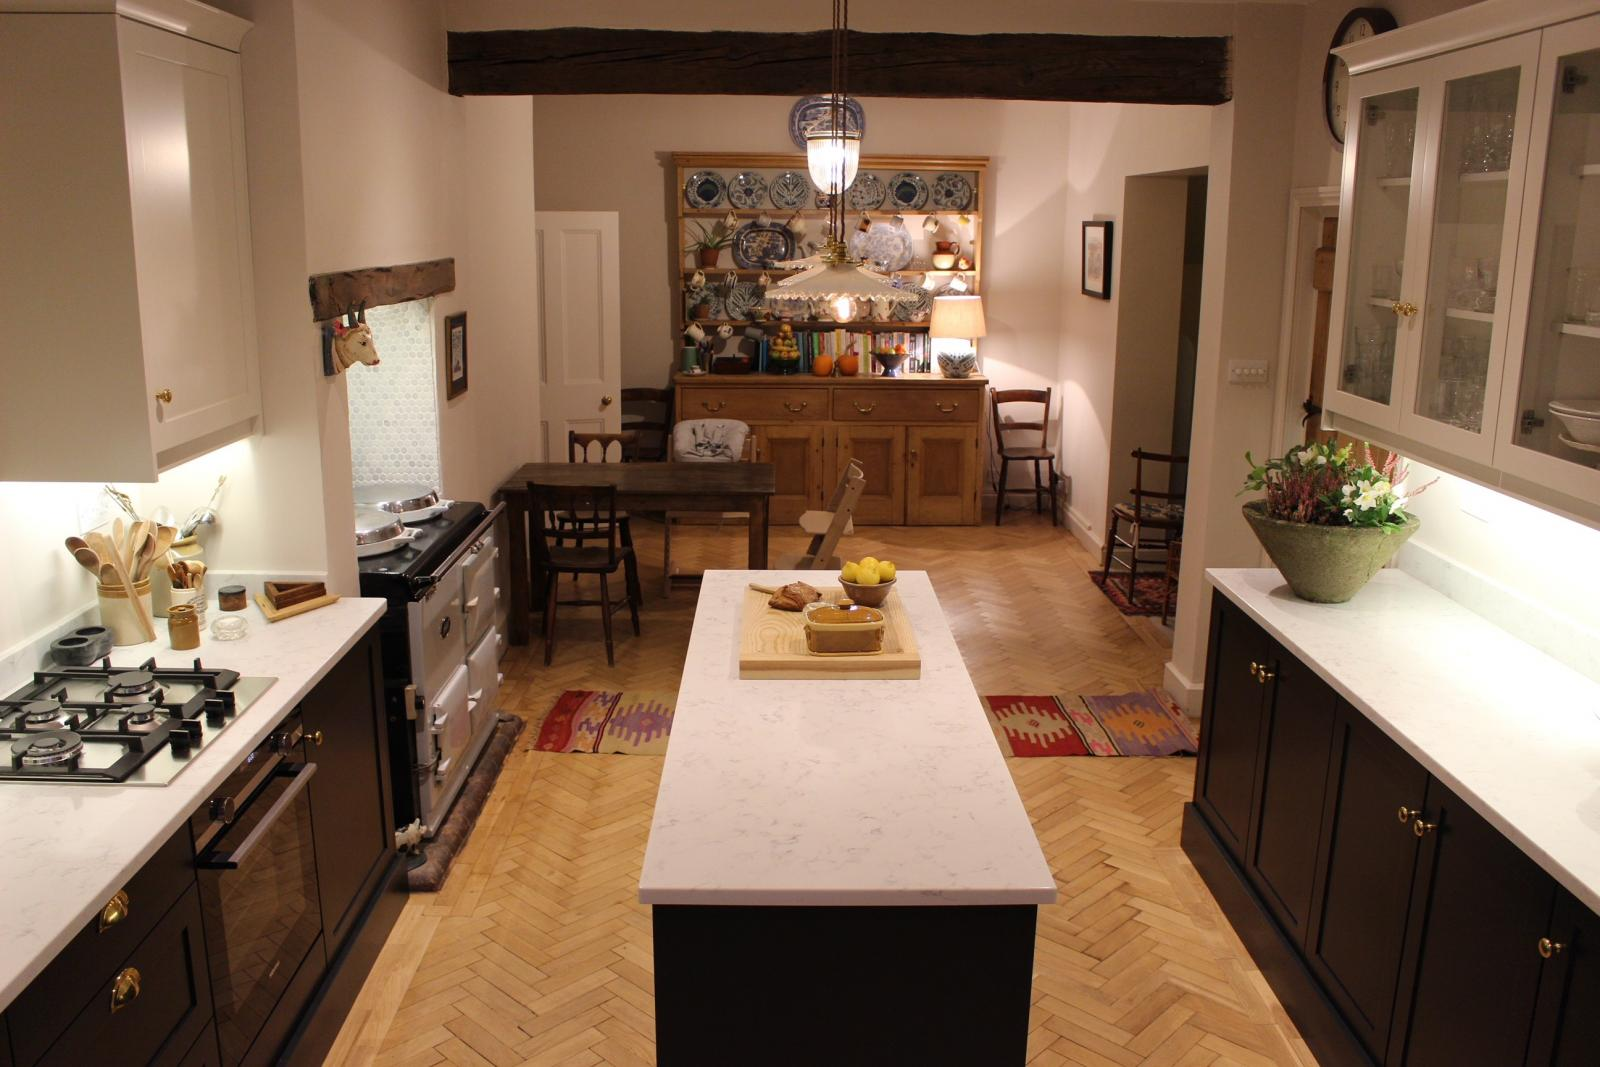 Kitchen Design Inspiration - from above